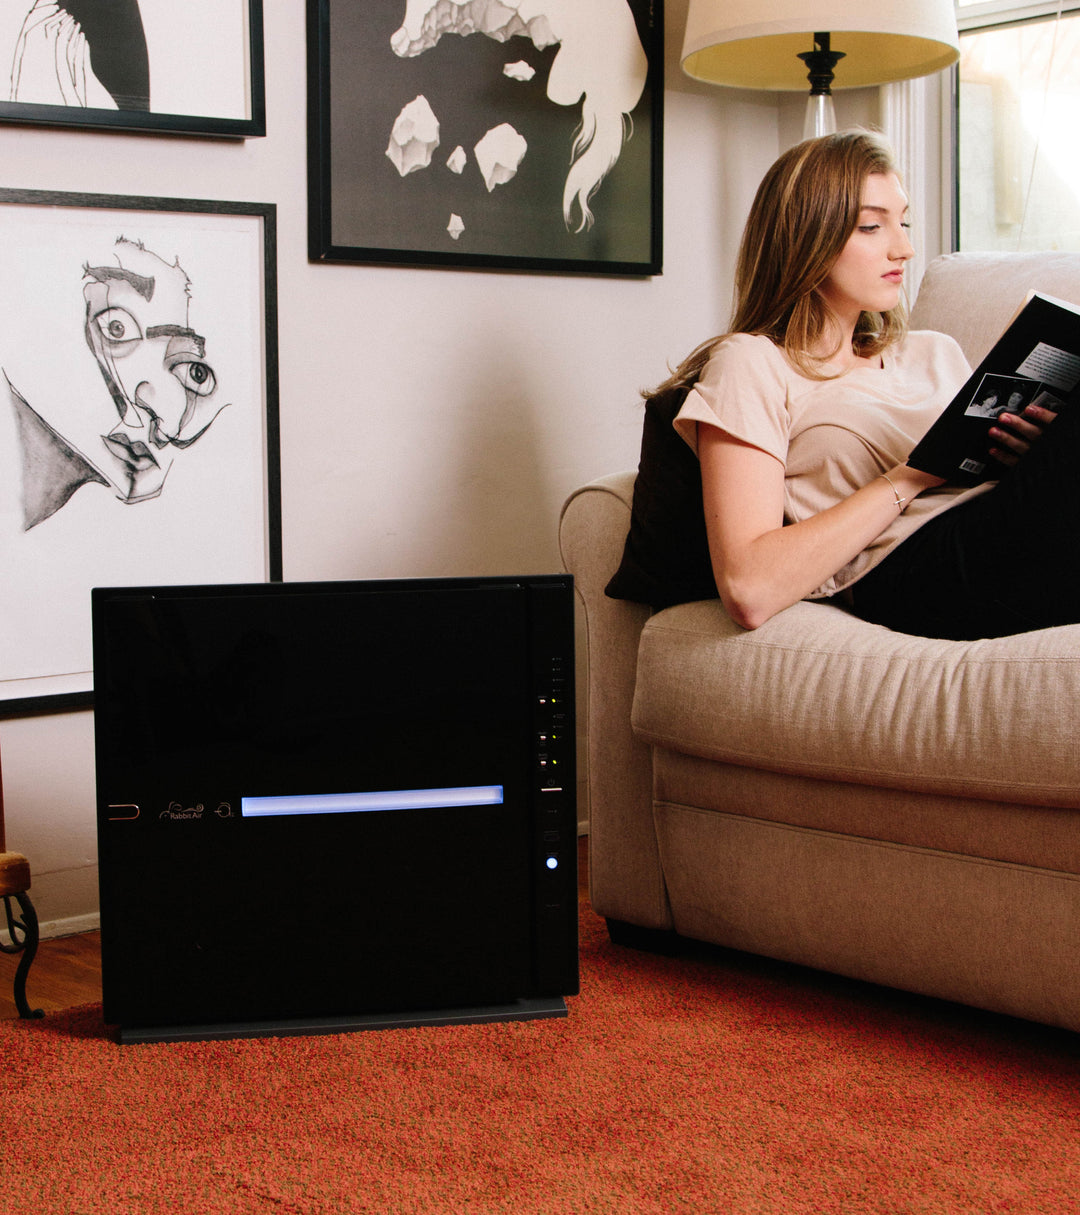 Black MinusA2 air purifier sitting by the couch